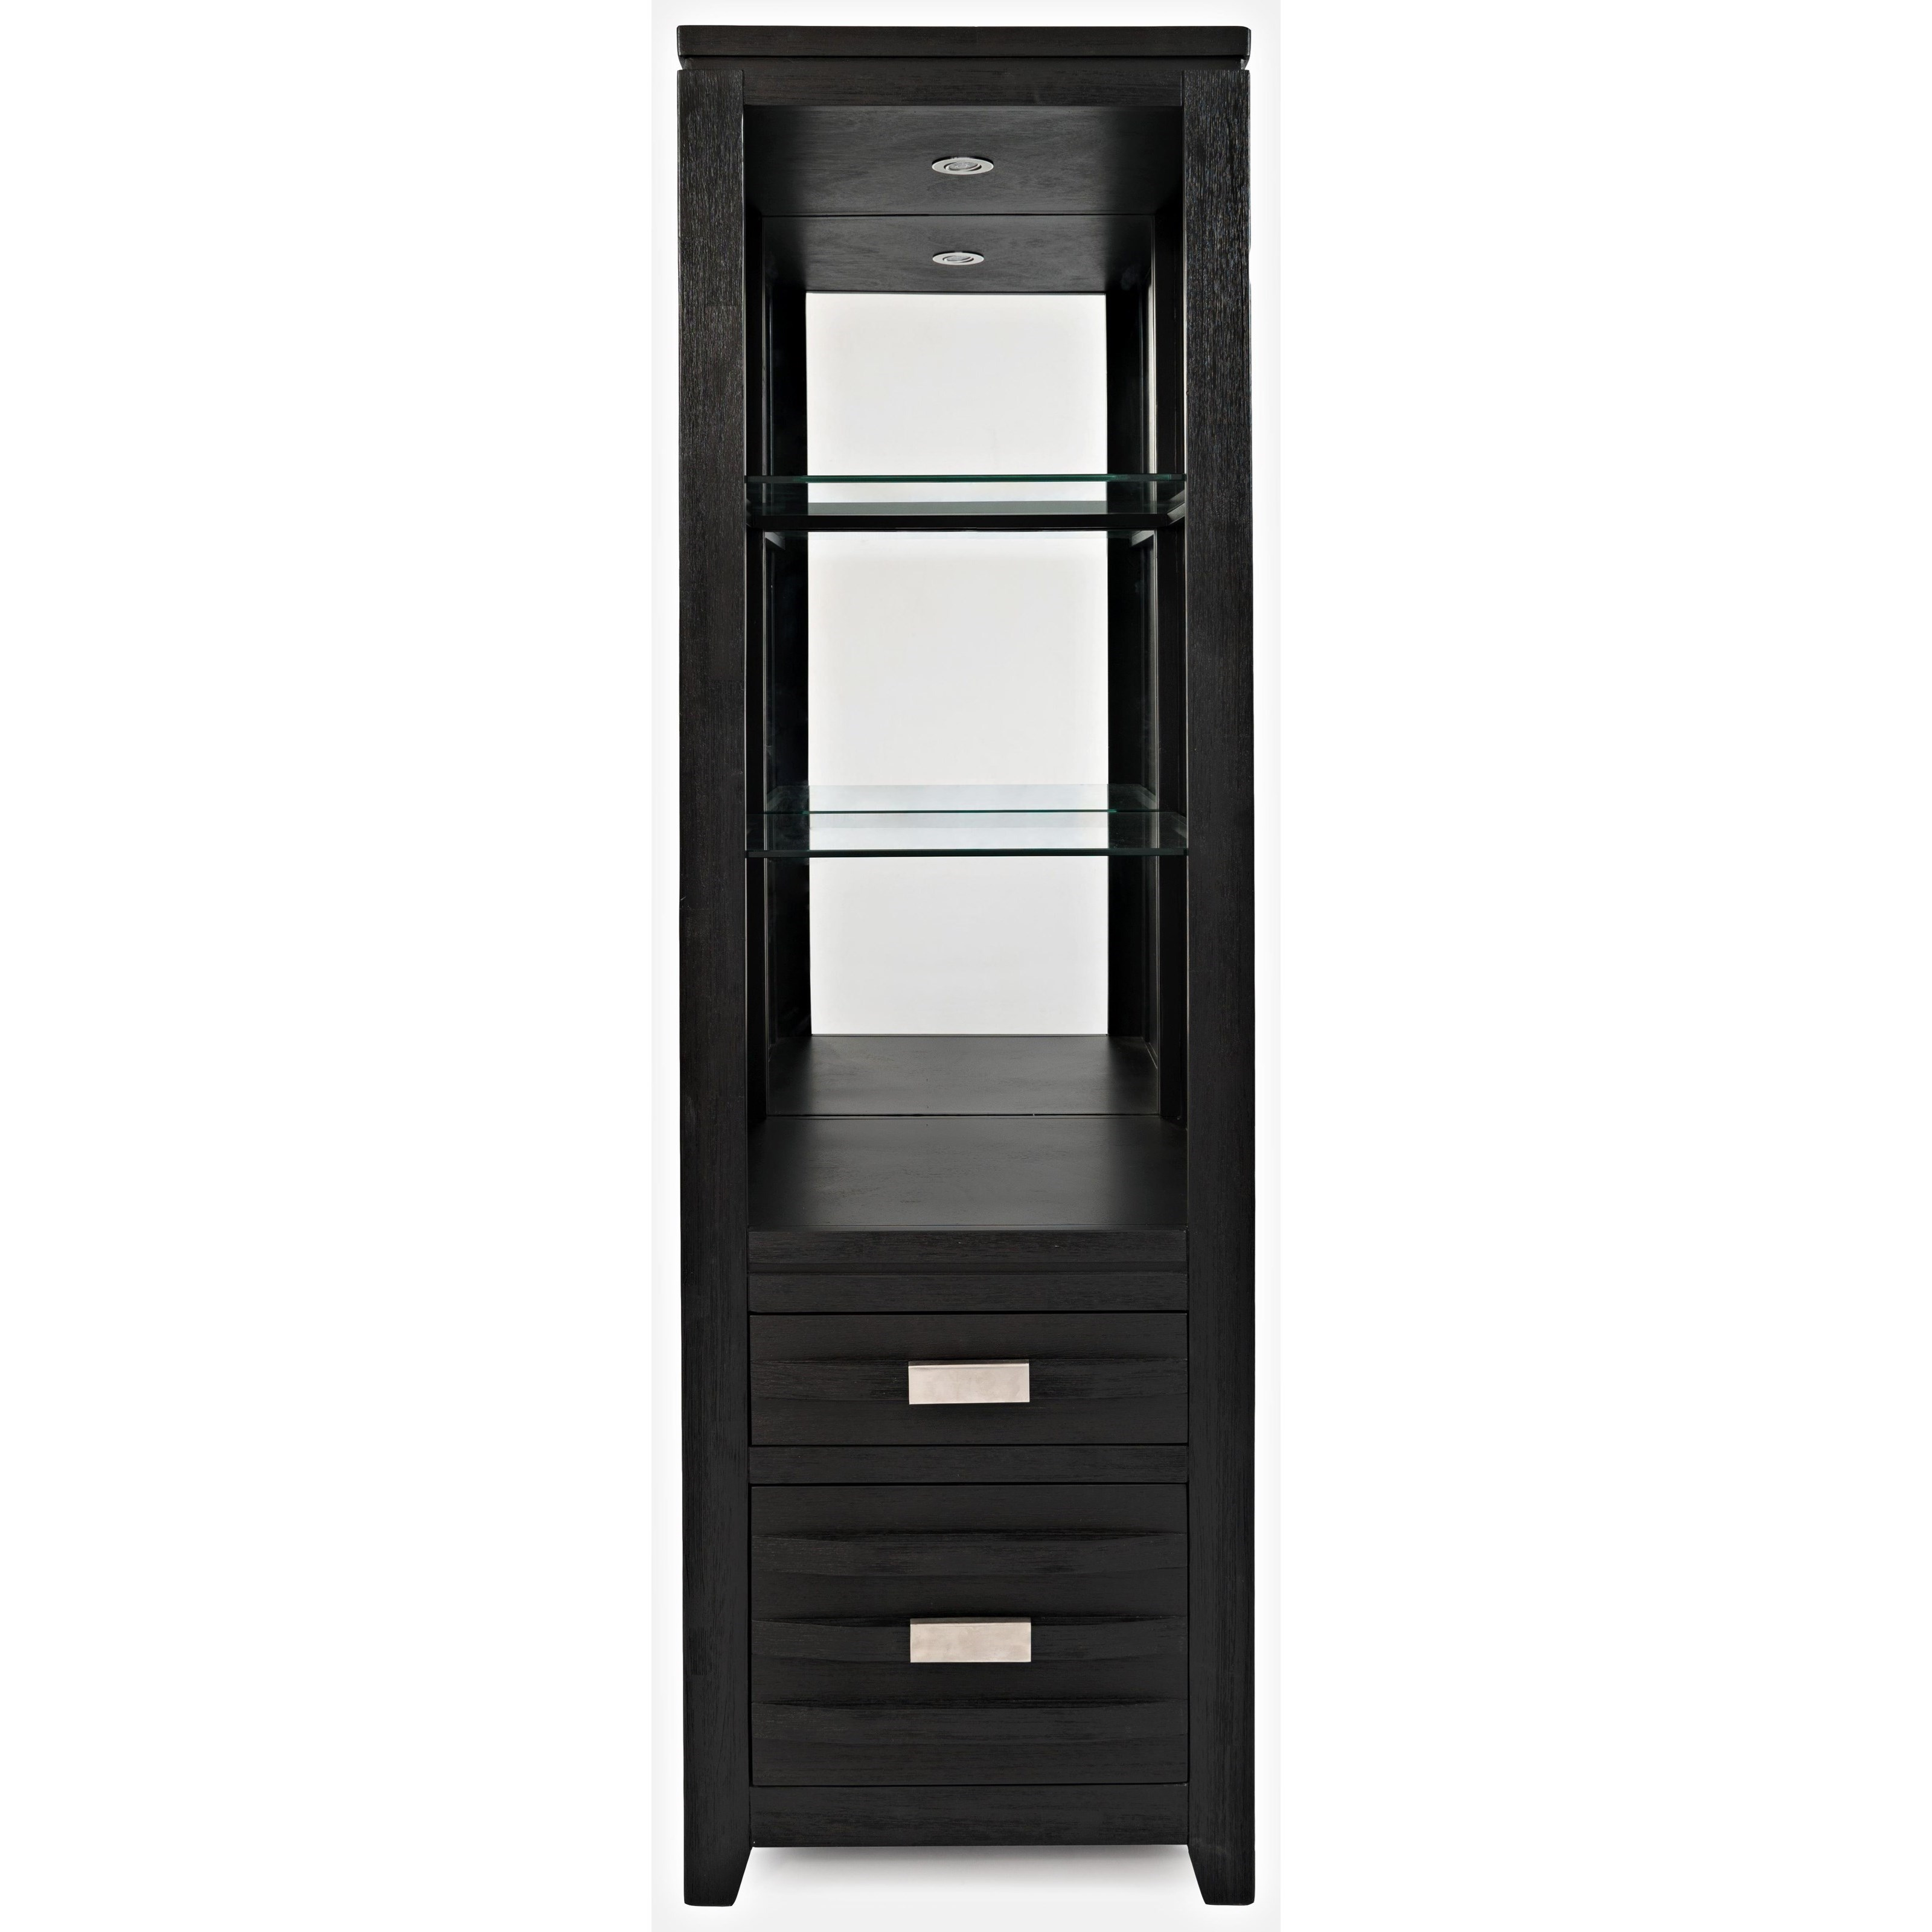 "Altamonte 22"" Pier by Jofran at Home Furnishings Direct"